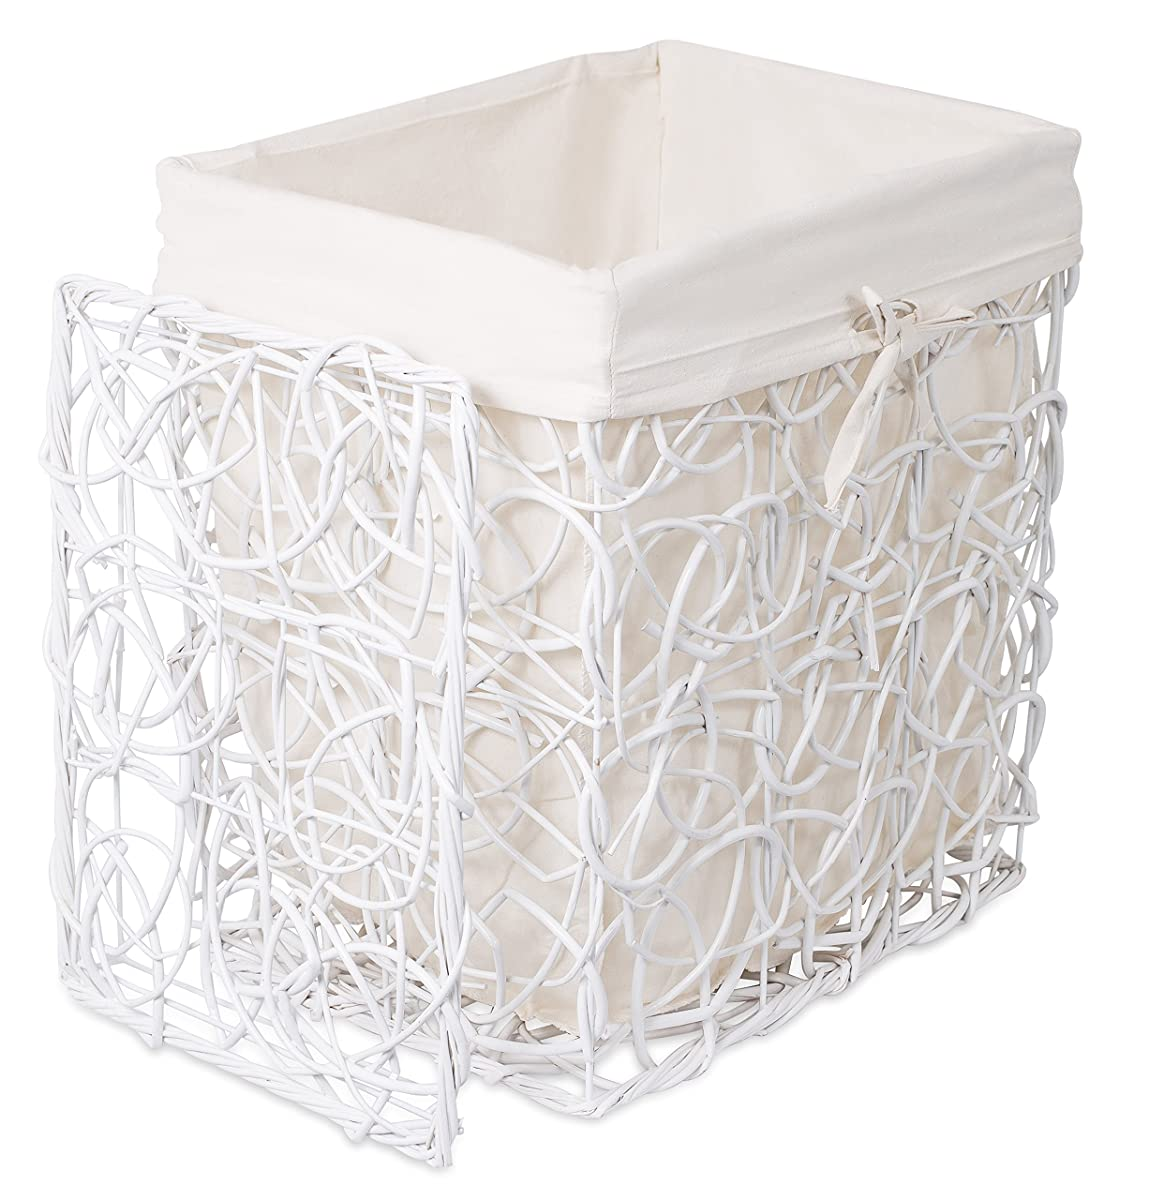 Decorative Laundry Baskets Birdrock Home Decorative Willow Laundry Hamper With Liner